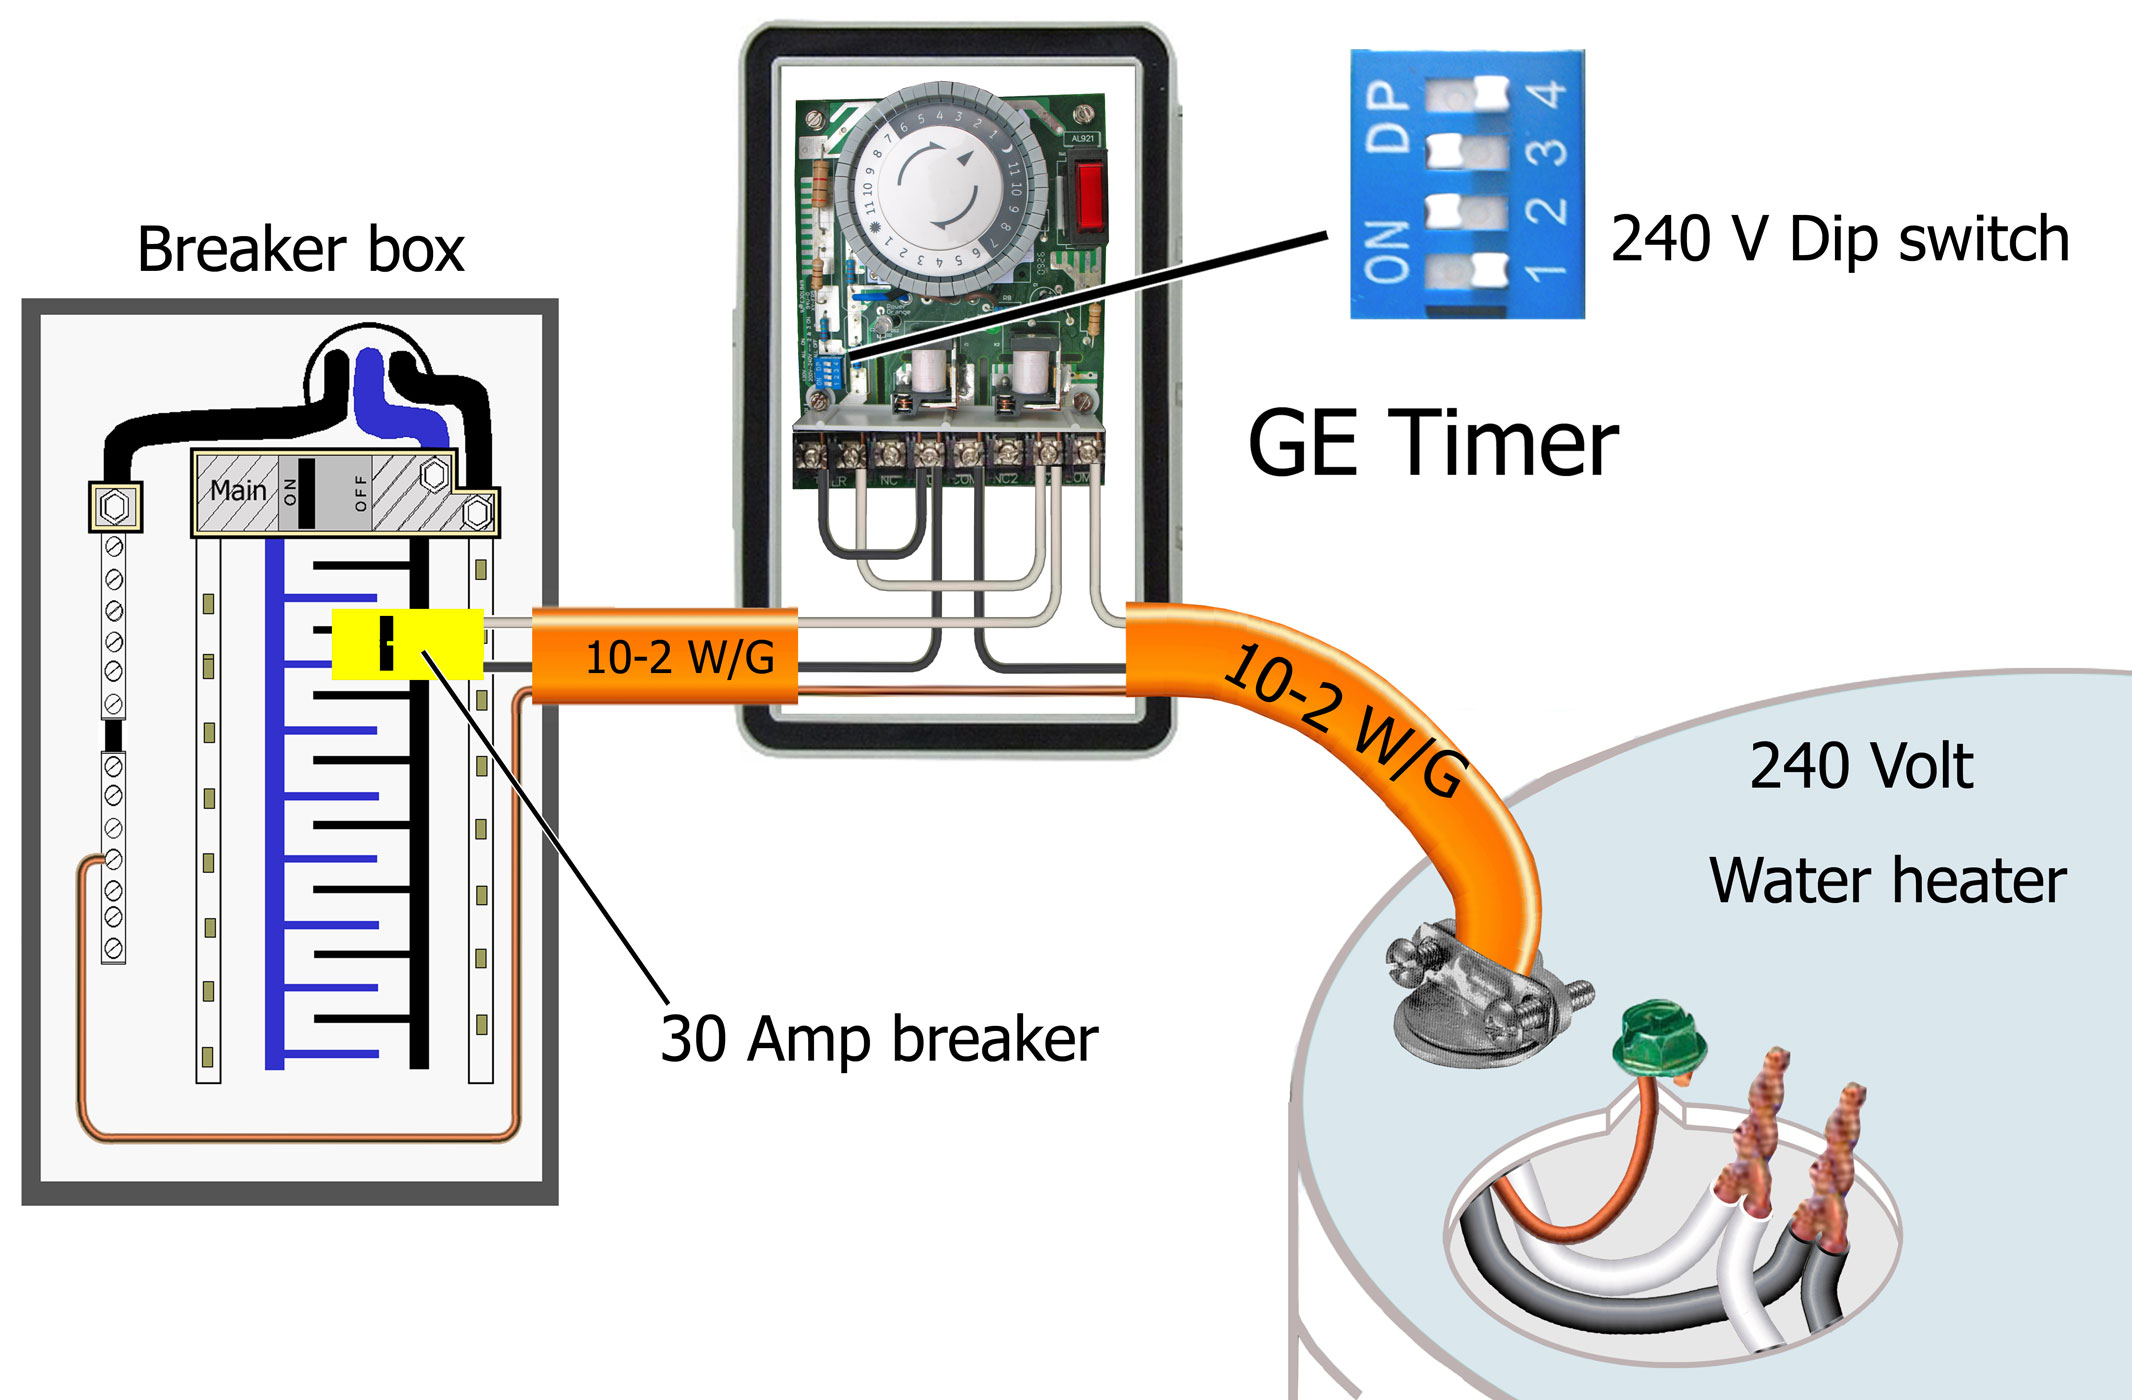 GE to water heater 500 how to wire ge 15207 timer hot water heater wiring schematic at gsmx.co